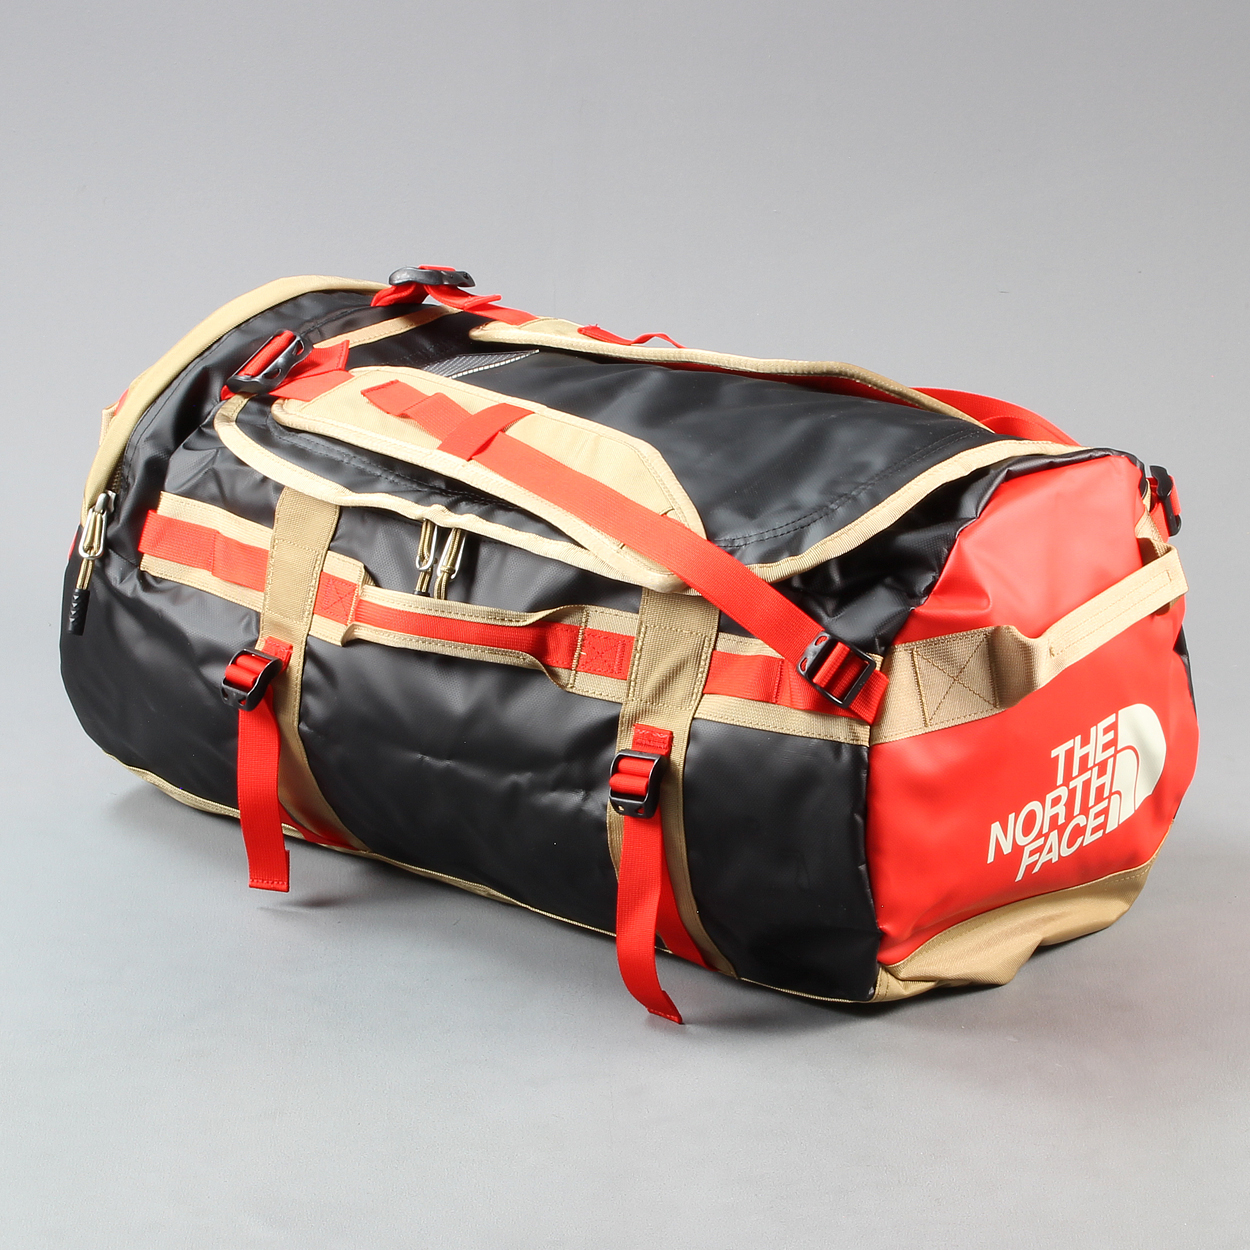 7ef834dbf The North Face Mens 71 Litre Duffel Bag Base Camp Fiery Red £59.15